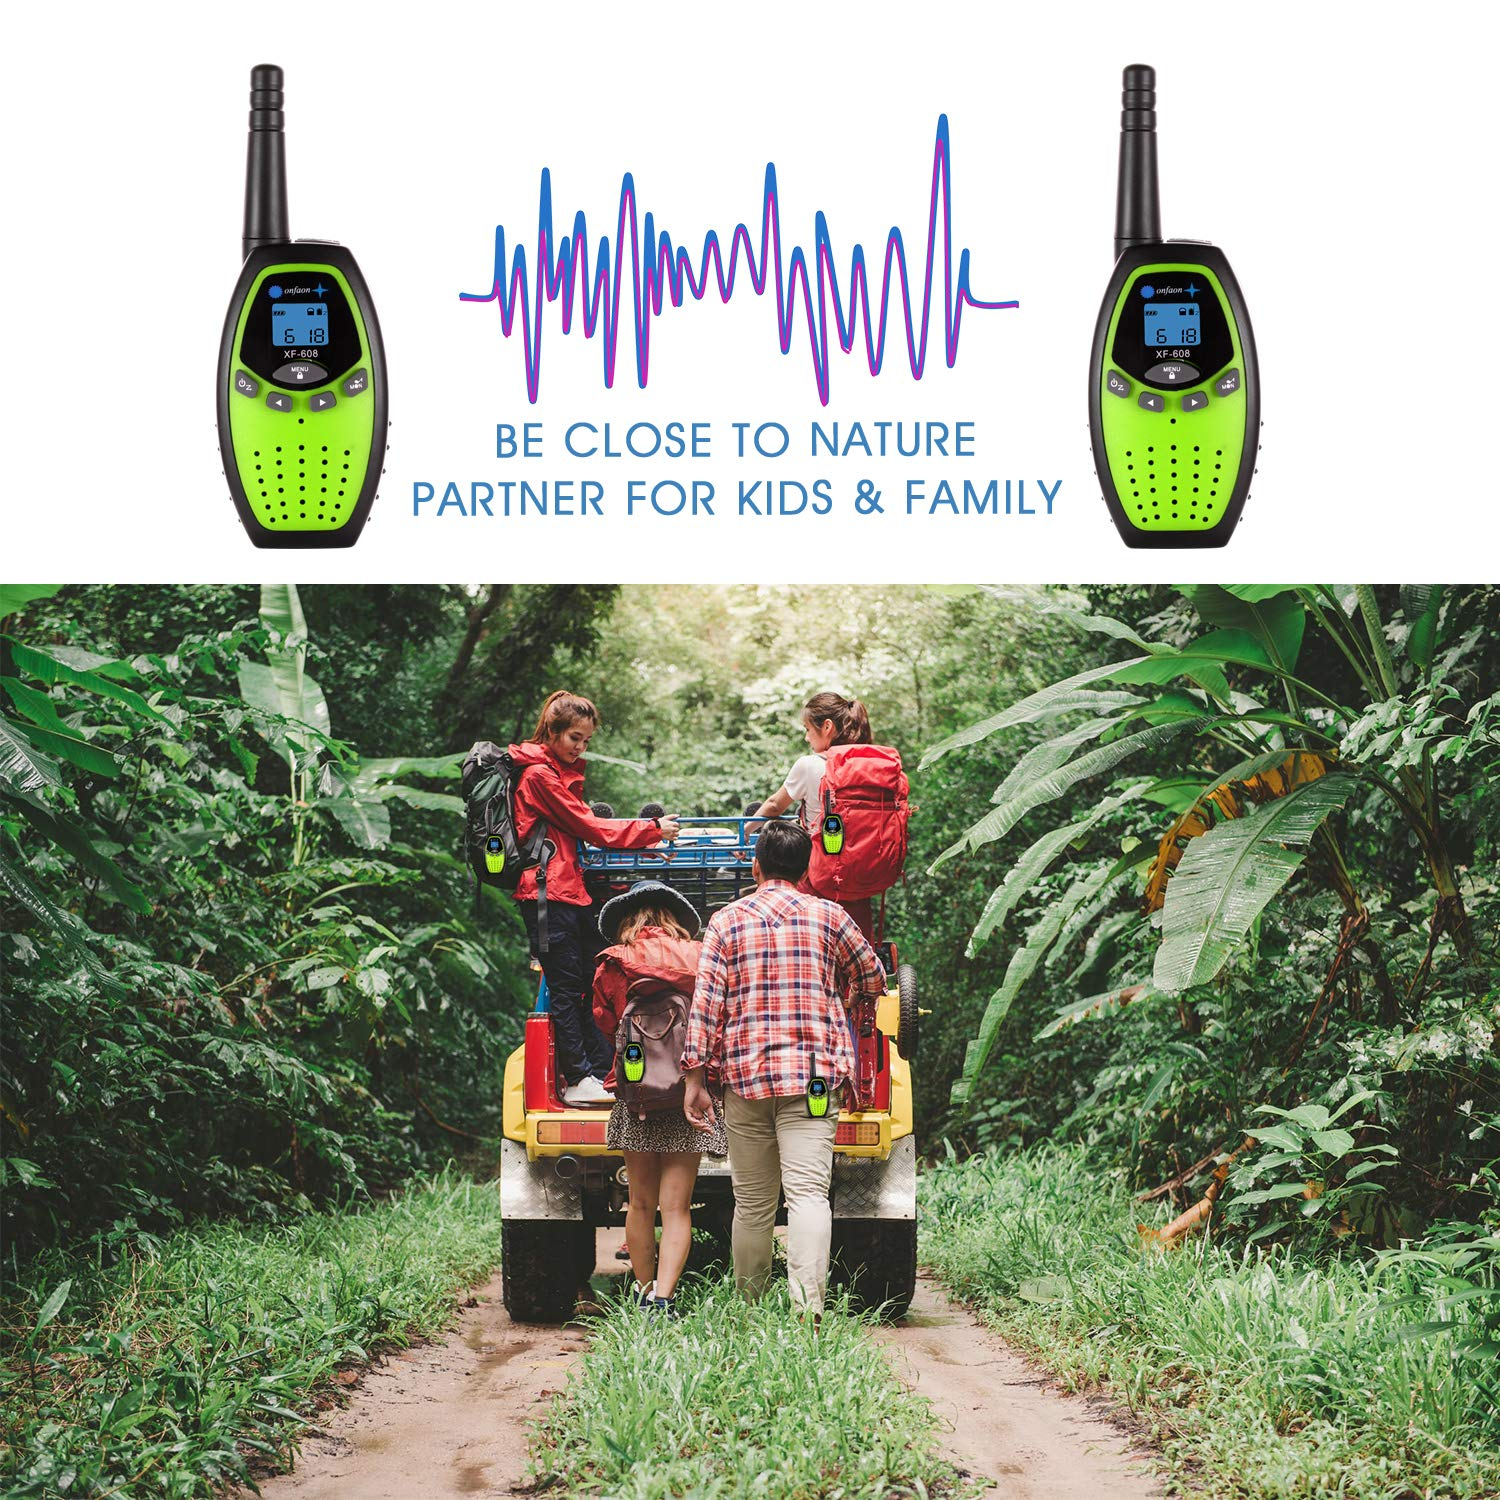 onfaon Walkies Talkies for Kids,22 Channels 2 Way Radios Long Range with Automatic Battery Save,Range Up to 2 Miles for Camping,Hiking,Fishing,Outdoor Activities. (Green) by ONFAON (Image #6)